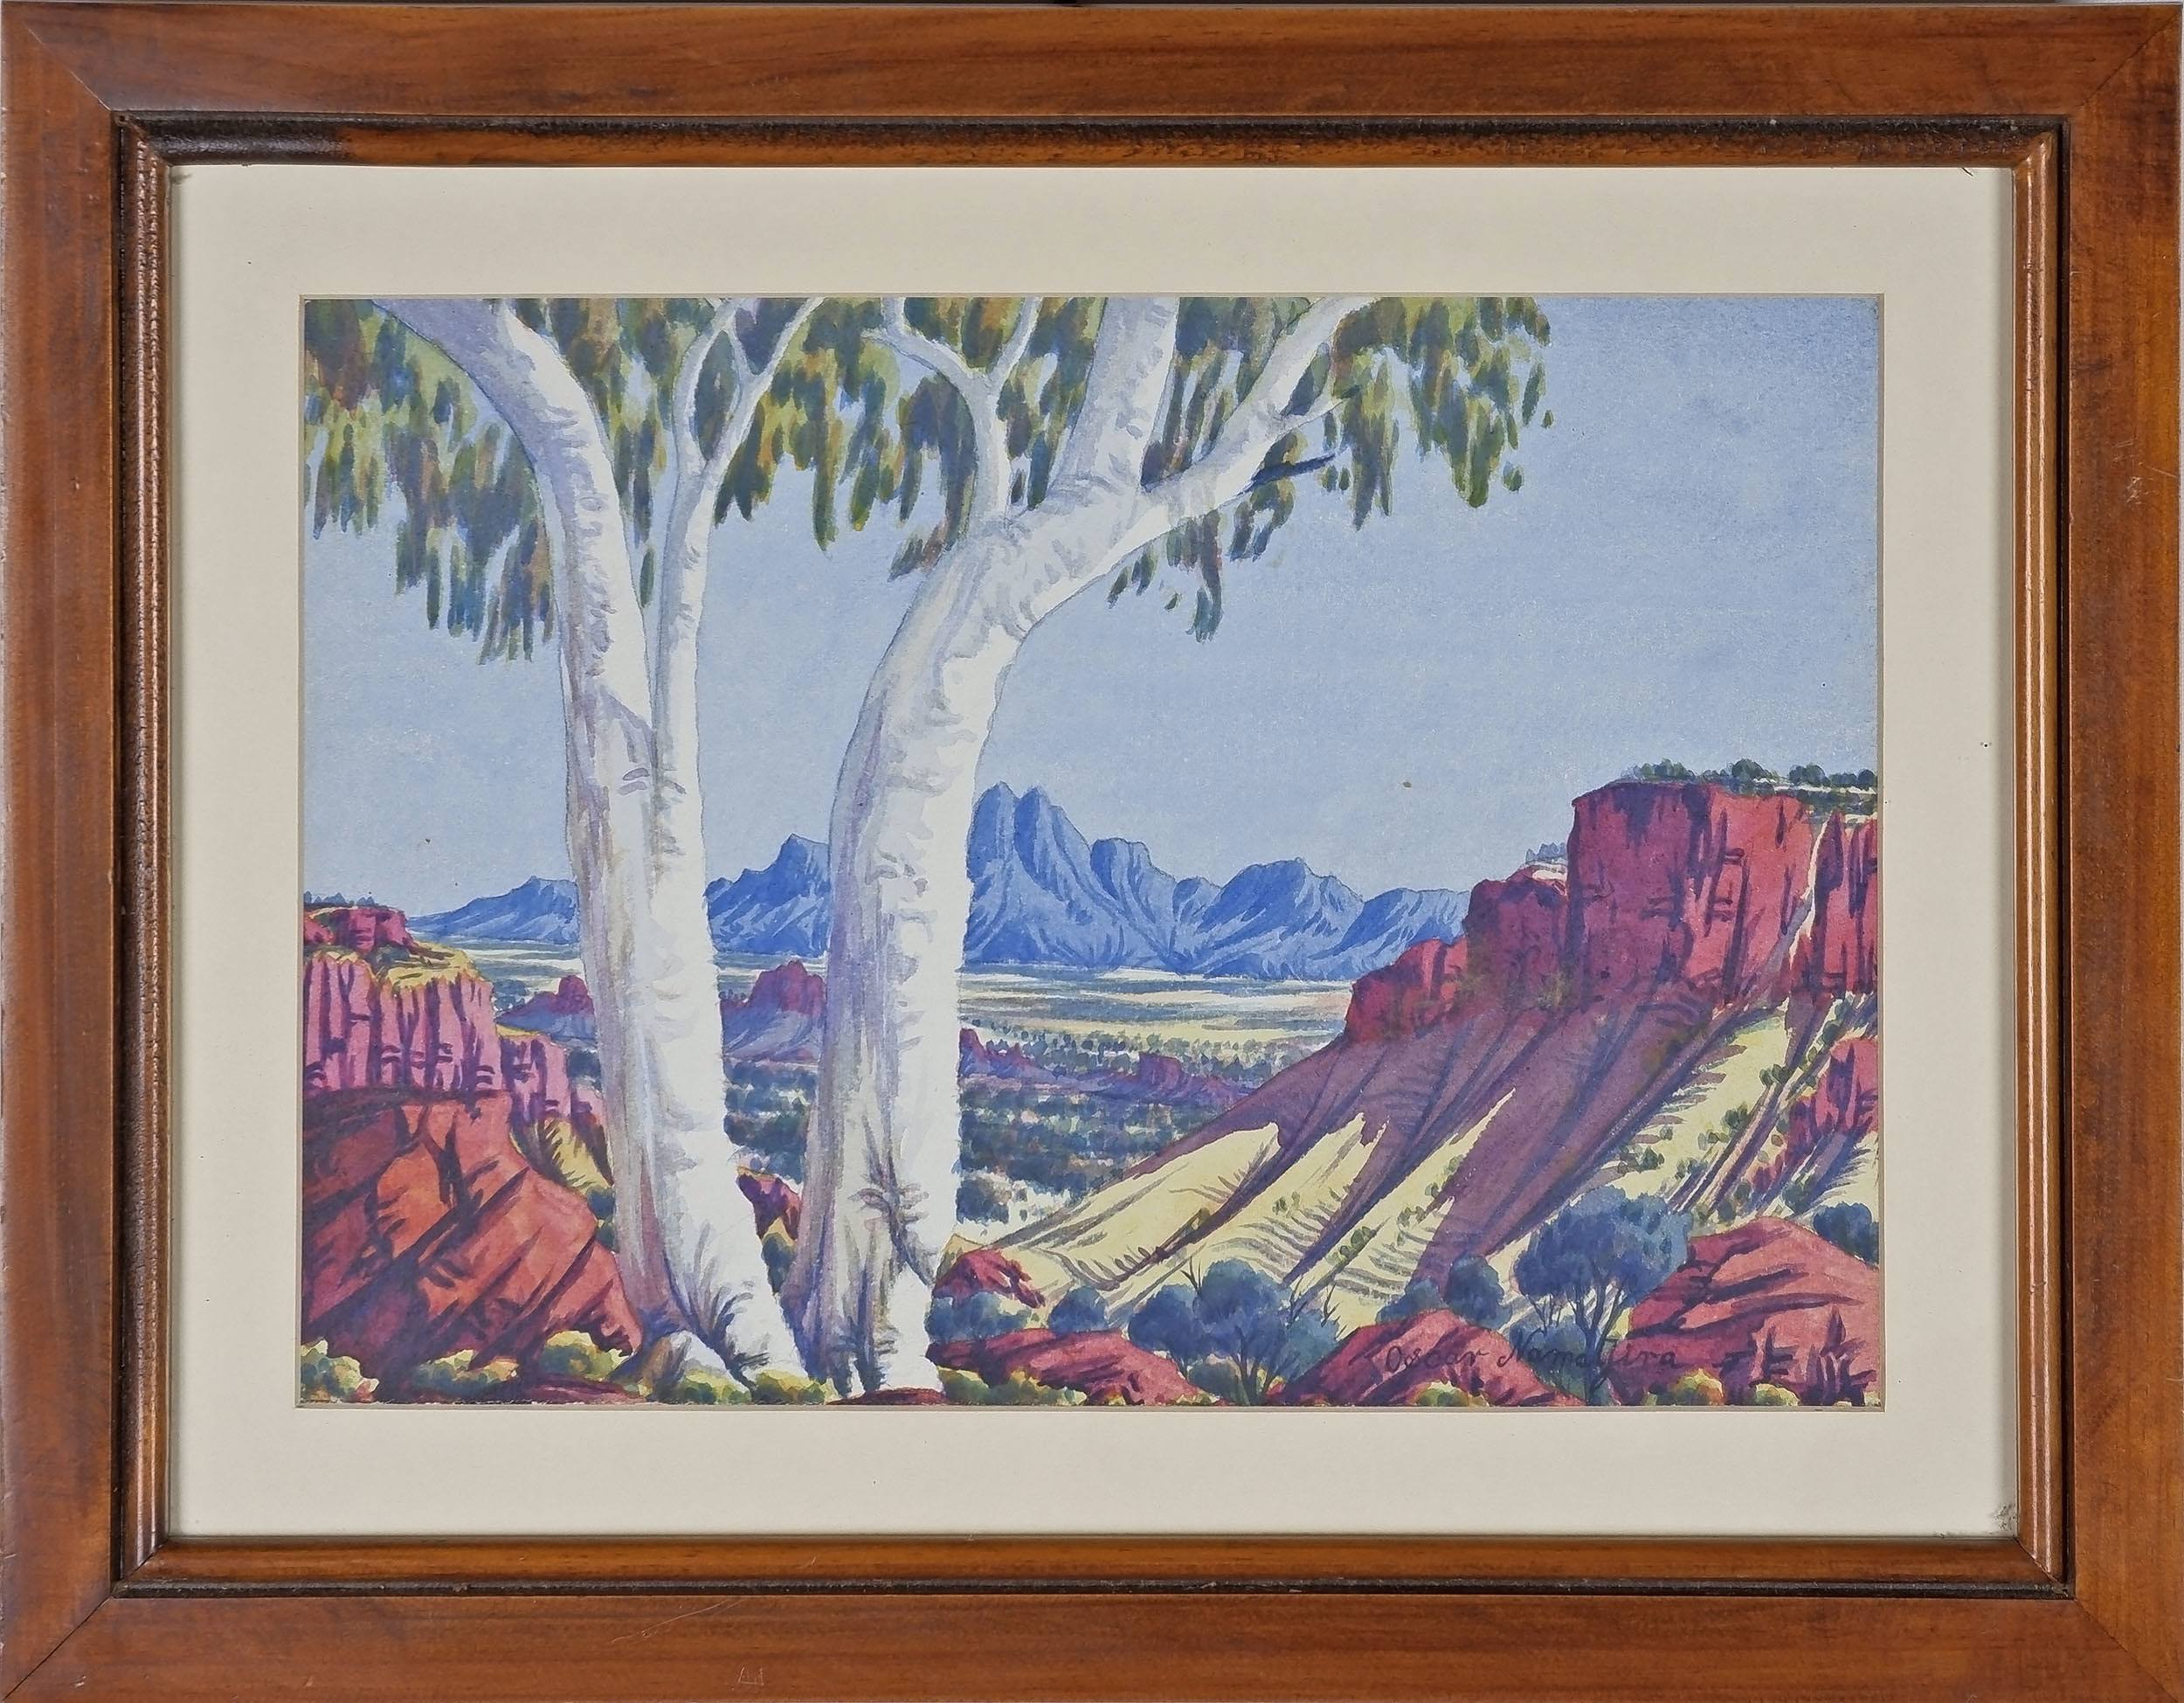 'Oscar Namatjira (1922-1991) Central Australian Landscape, Watercolour'